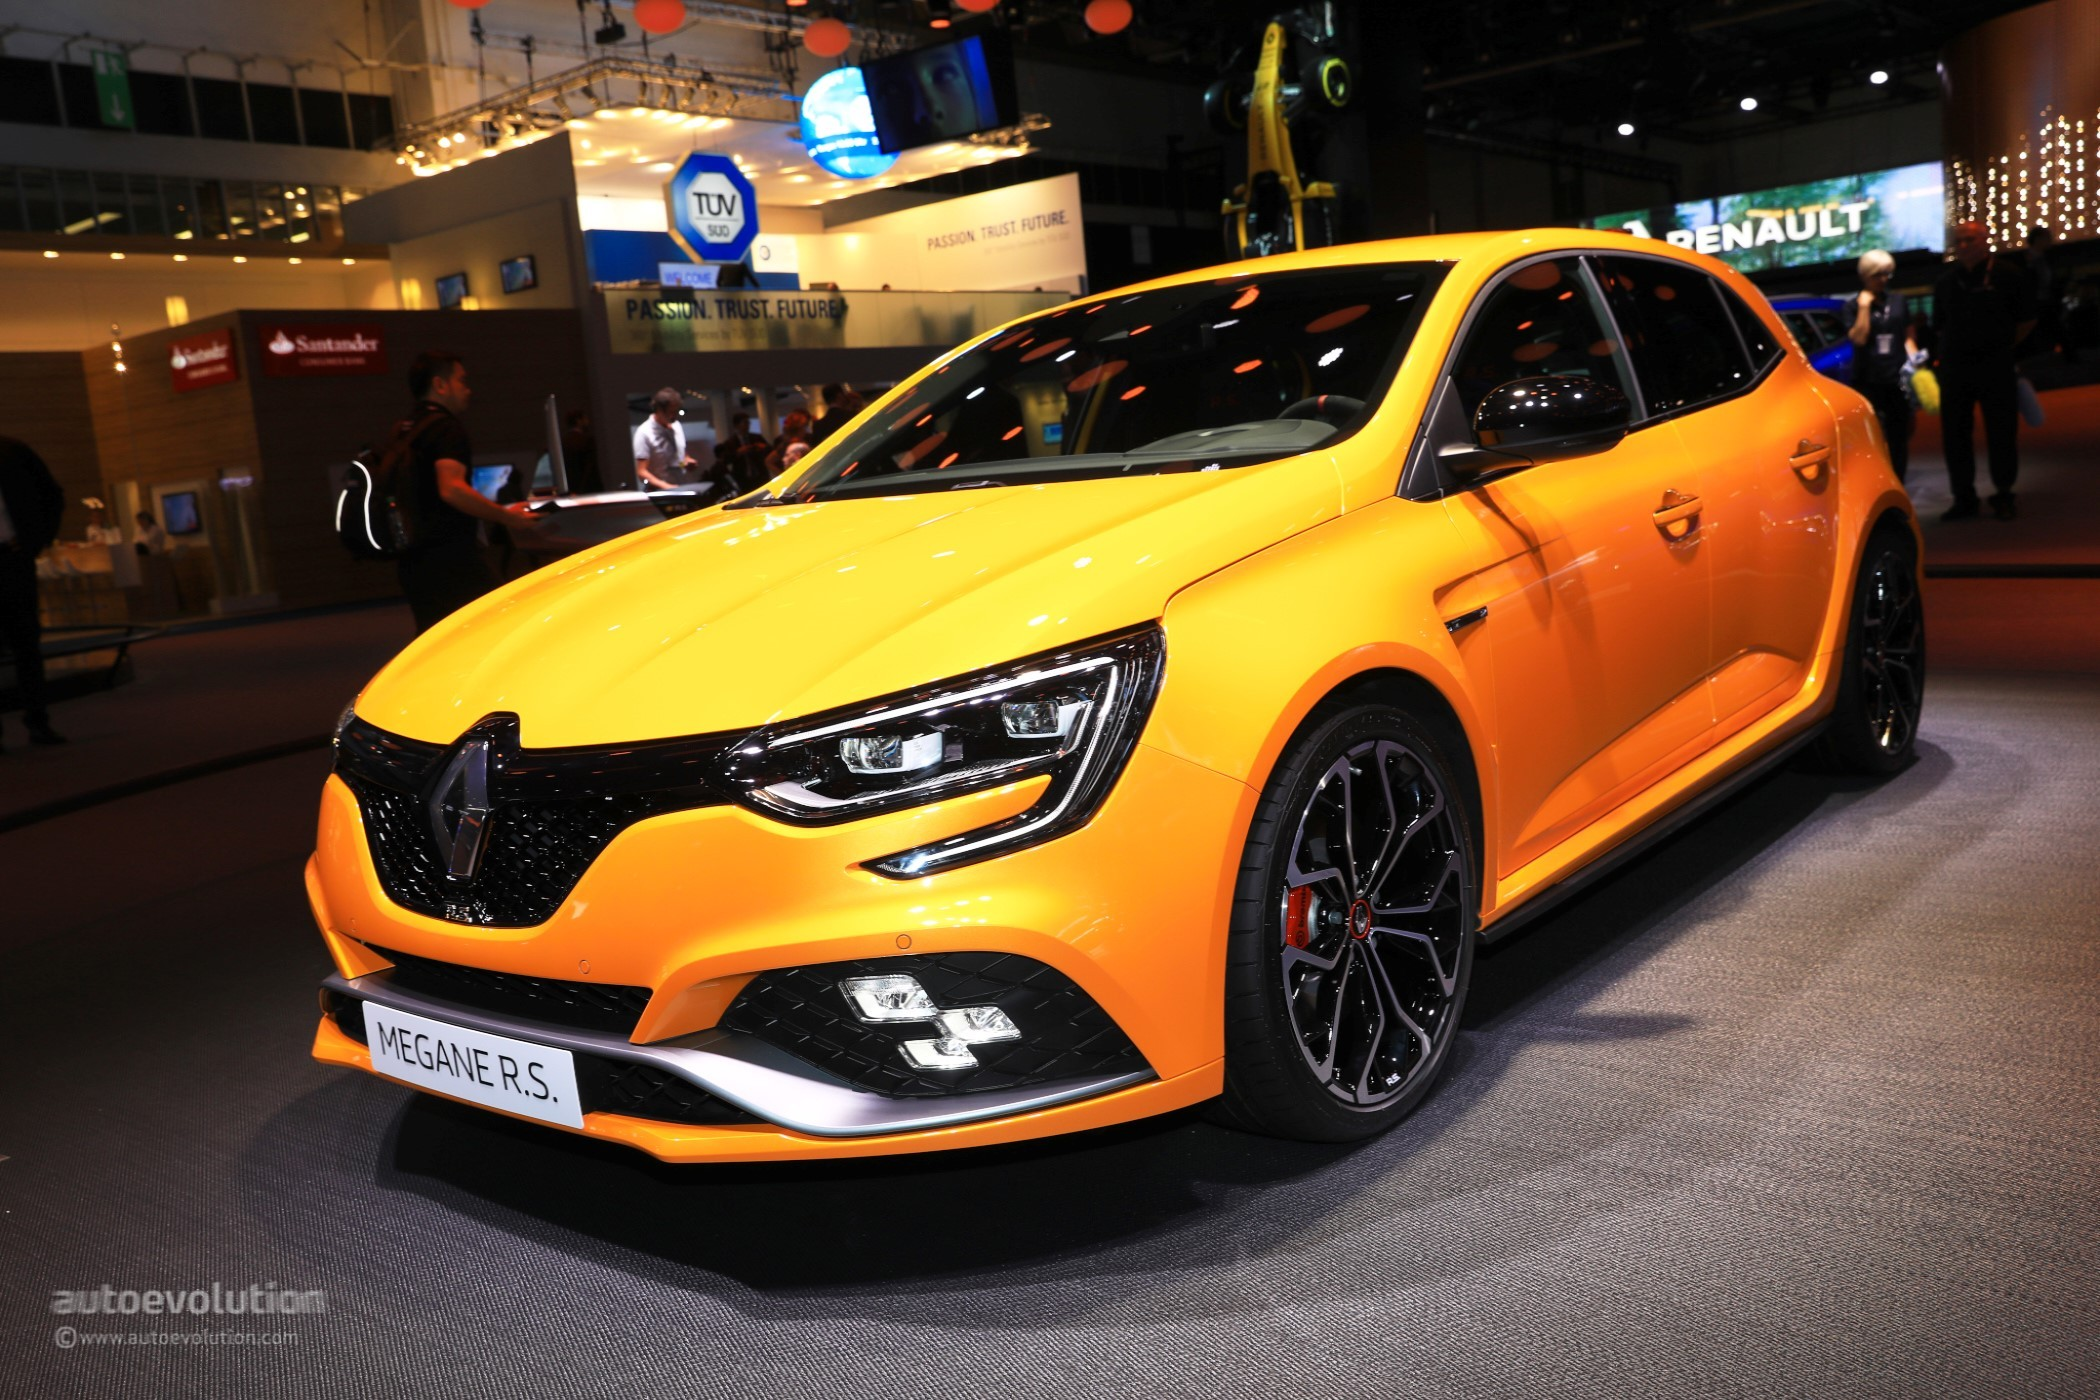 Renault Megane 2019 >> 2018 Megane RS 3-Door Rendering Feels Ridiculous - autoevolution